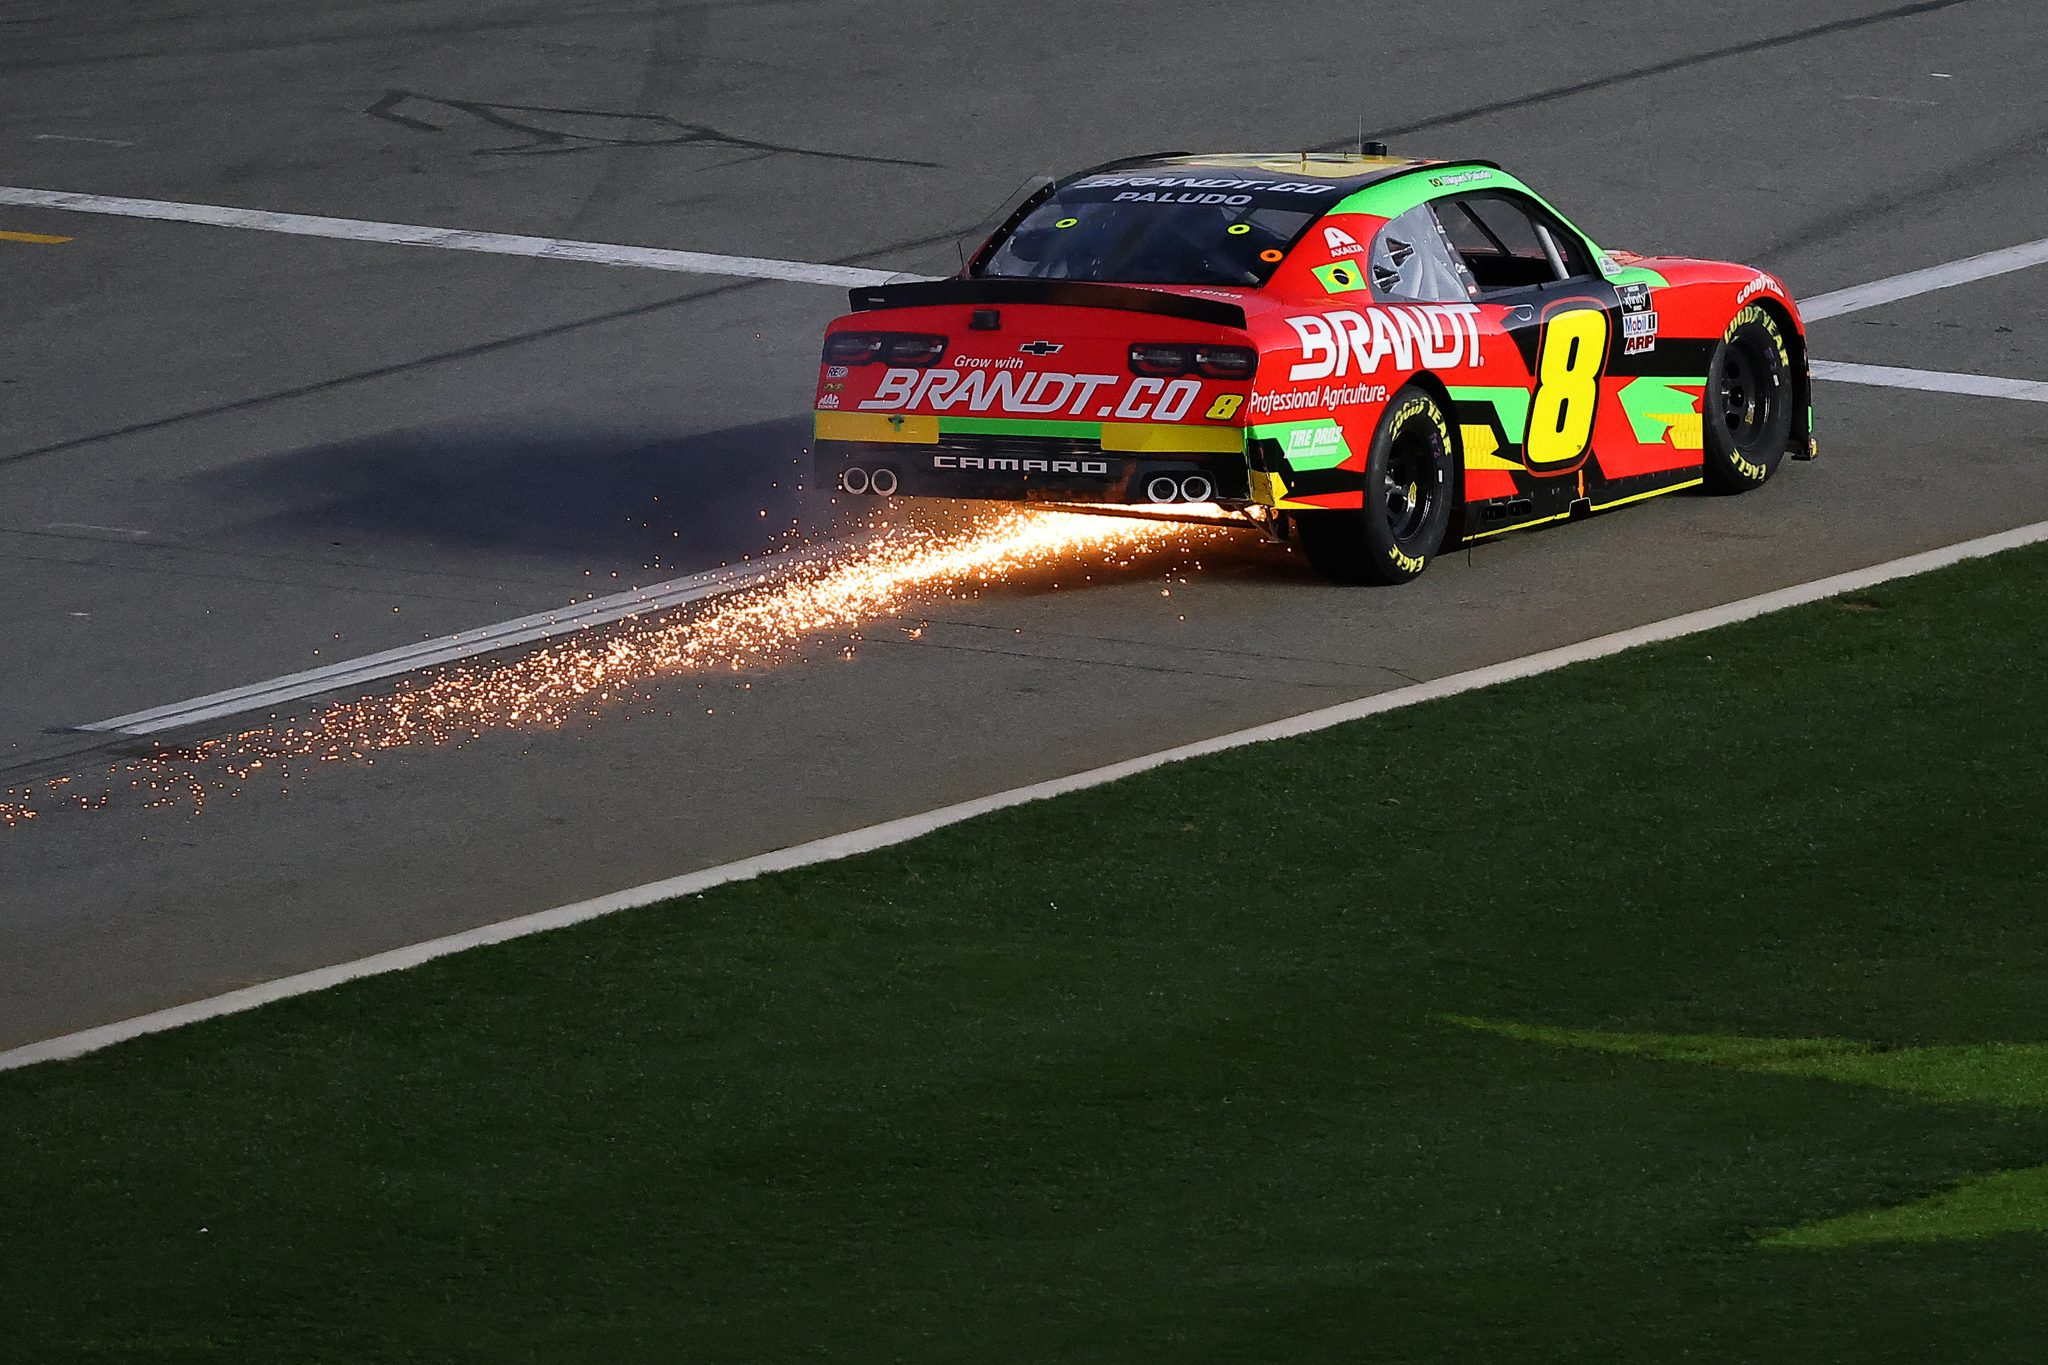 DAYTONA BEACH, FLORIDA - FEBRUARY 20: Miguel Paludo, driver of the #8 Brandt Chevrolet, drives with sparks during the NASCAR Xfinity Super Start Batteries 188 At Daytona Presented by O'Reilly at Daytona International Speedway on February 20, 2021 in Daytona Beach, Florida. (Photo by James Gilbert/Getty Images) | Getty Images